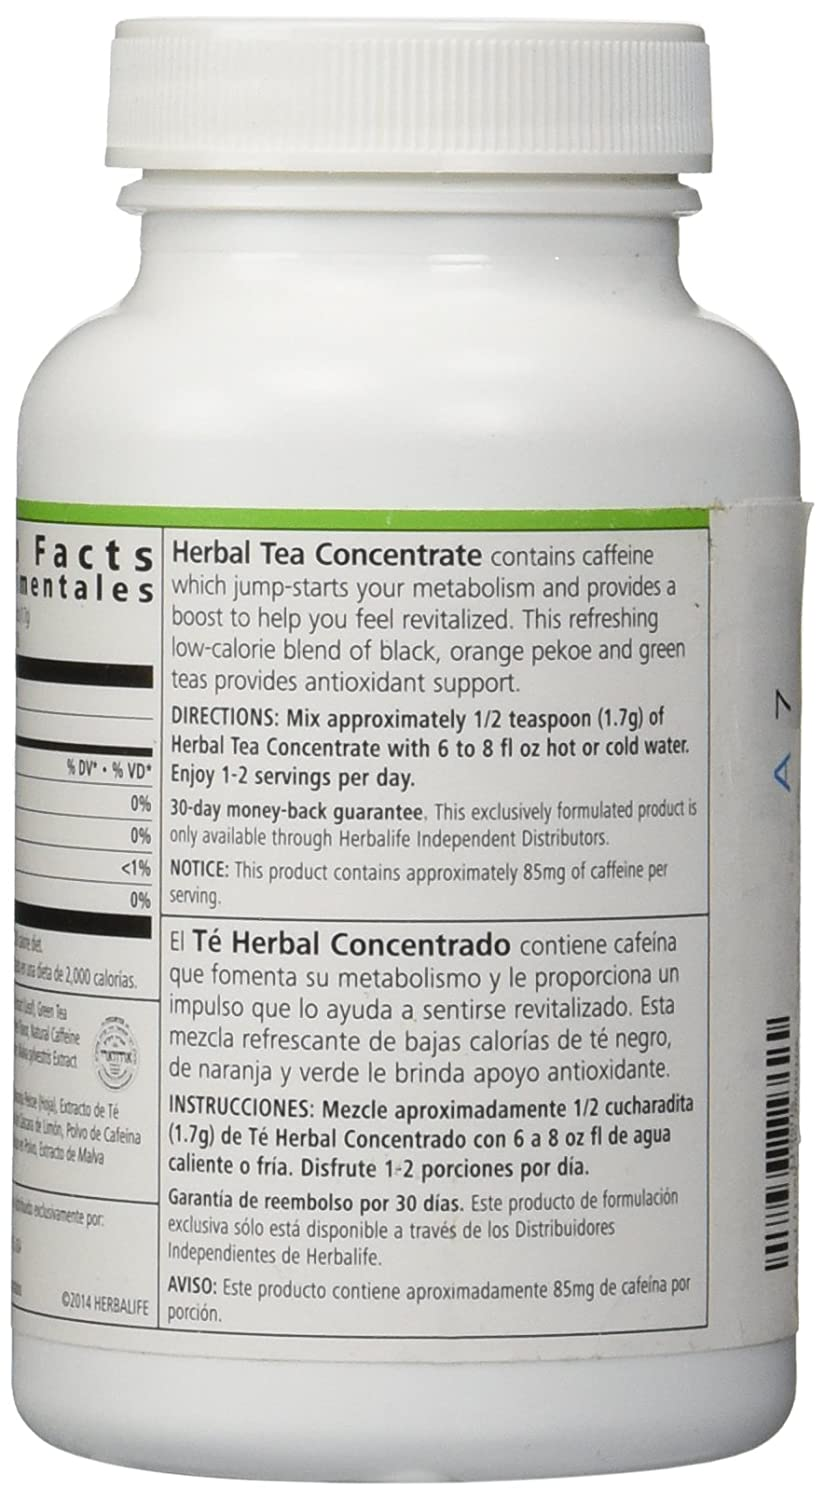 Herbalife Herbal Tea Concentrate Original, 3.5 oz.